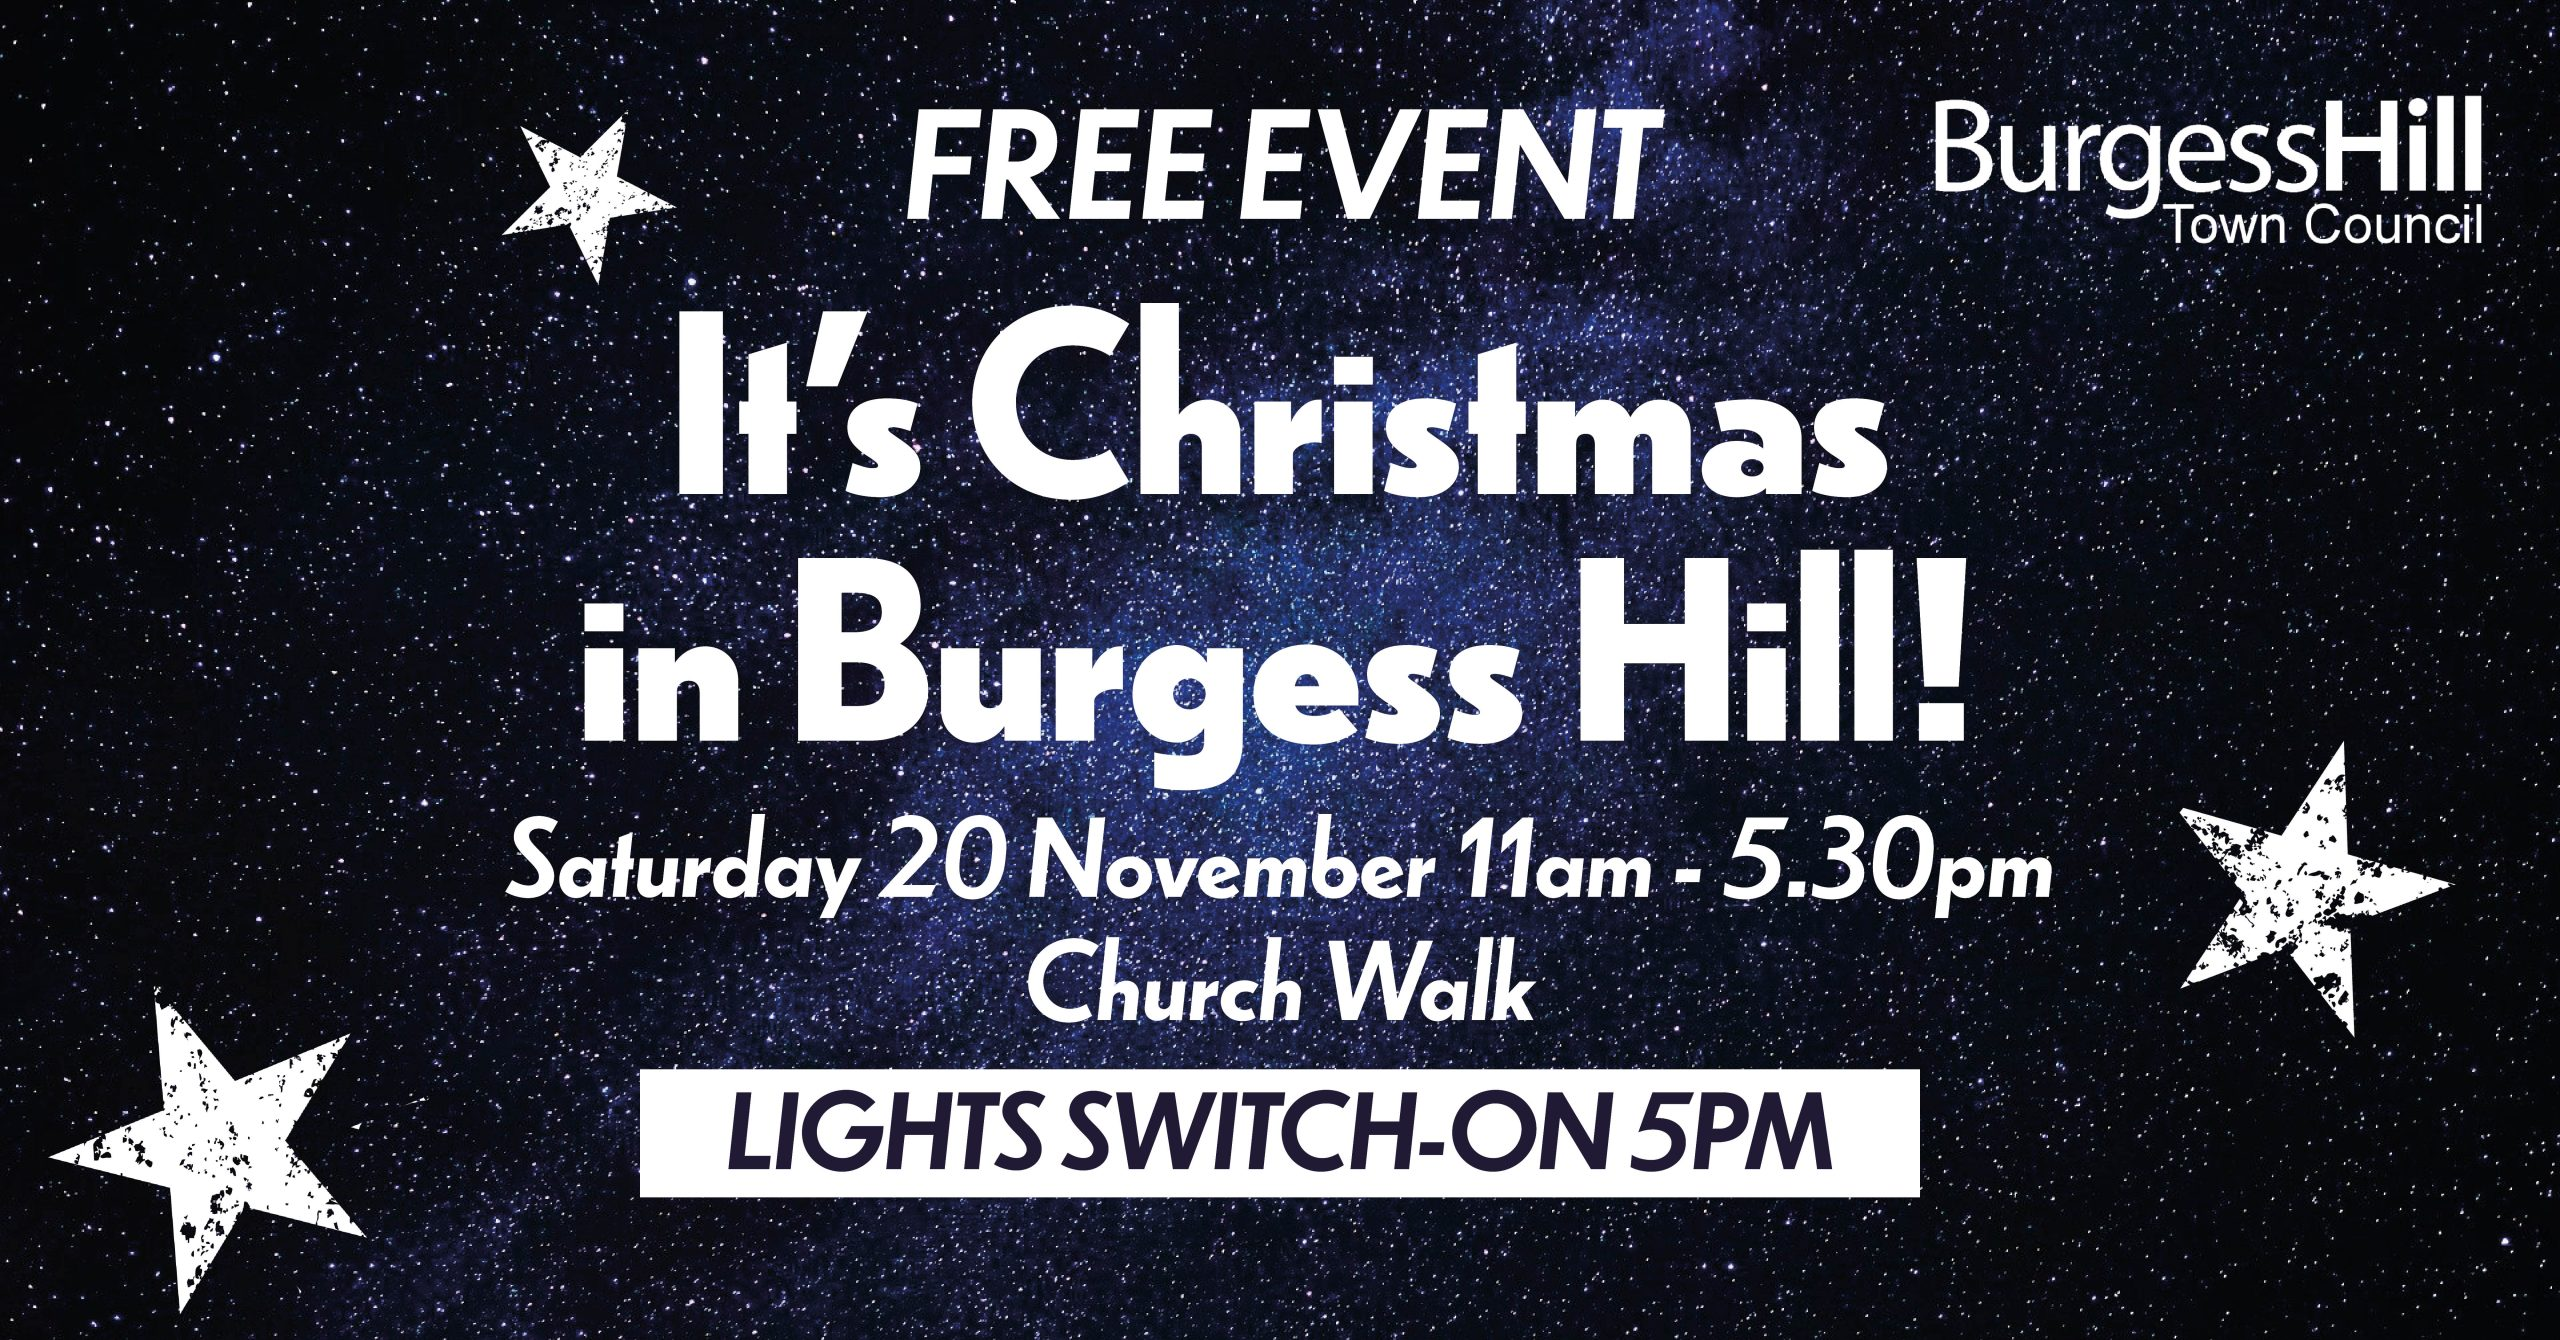 It's Christmas in Burgess Hill!